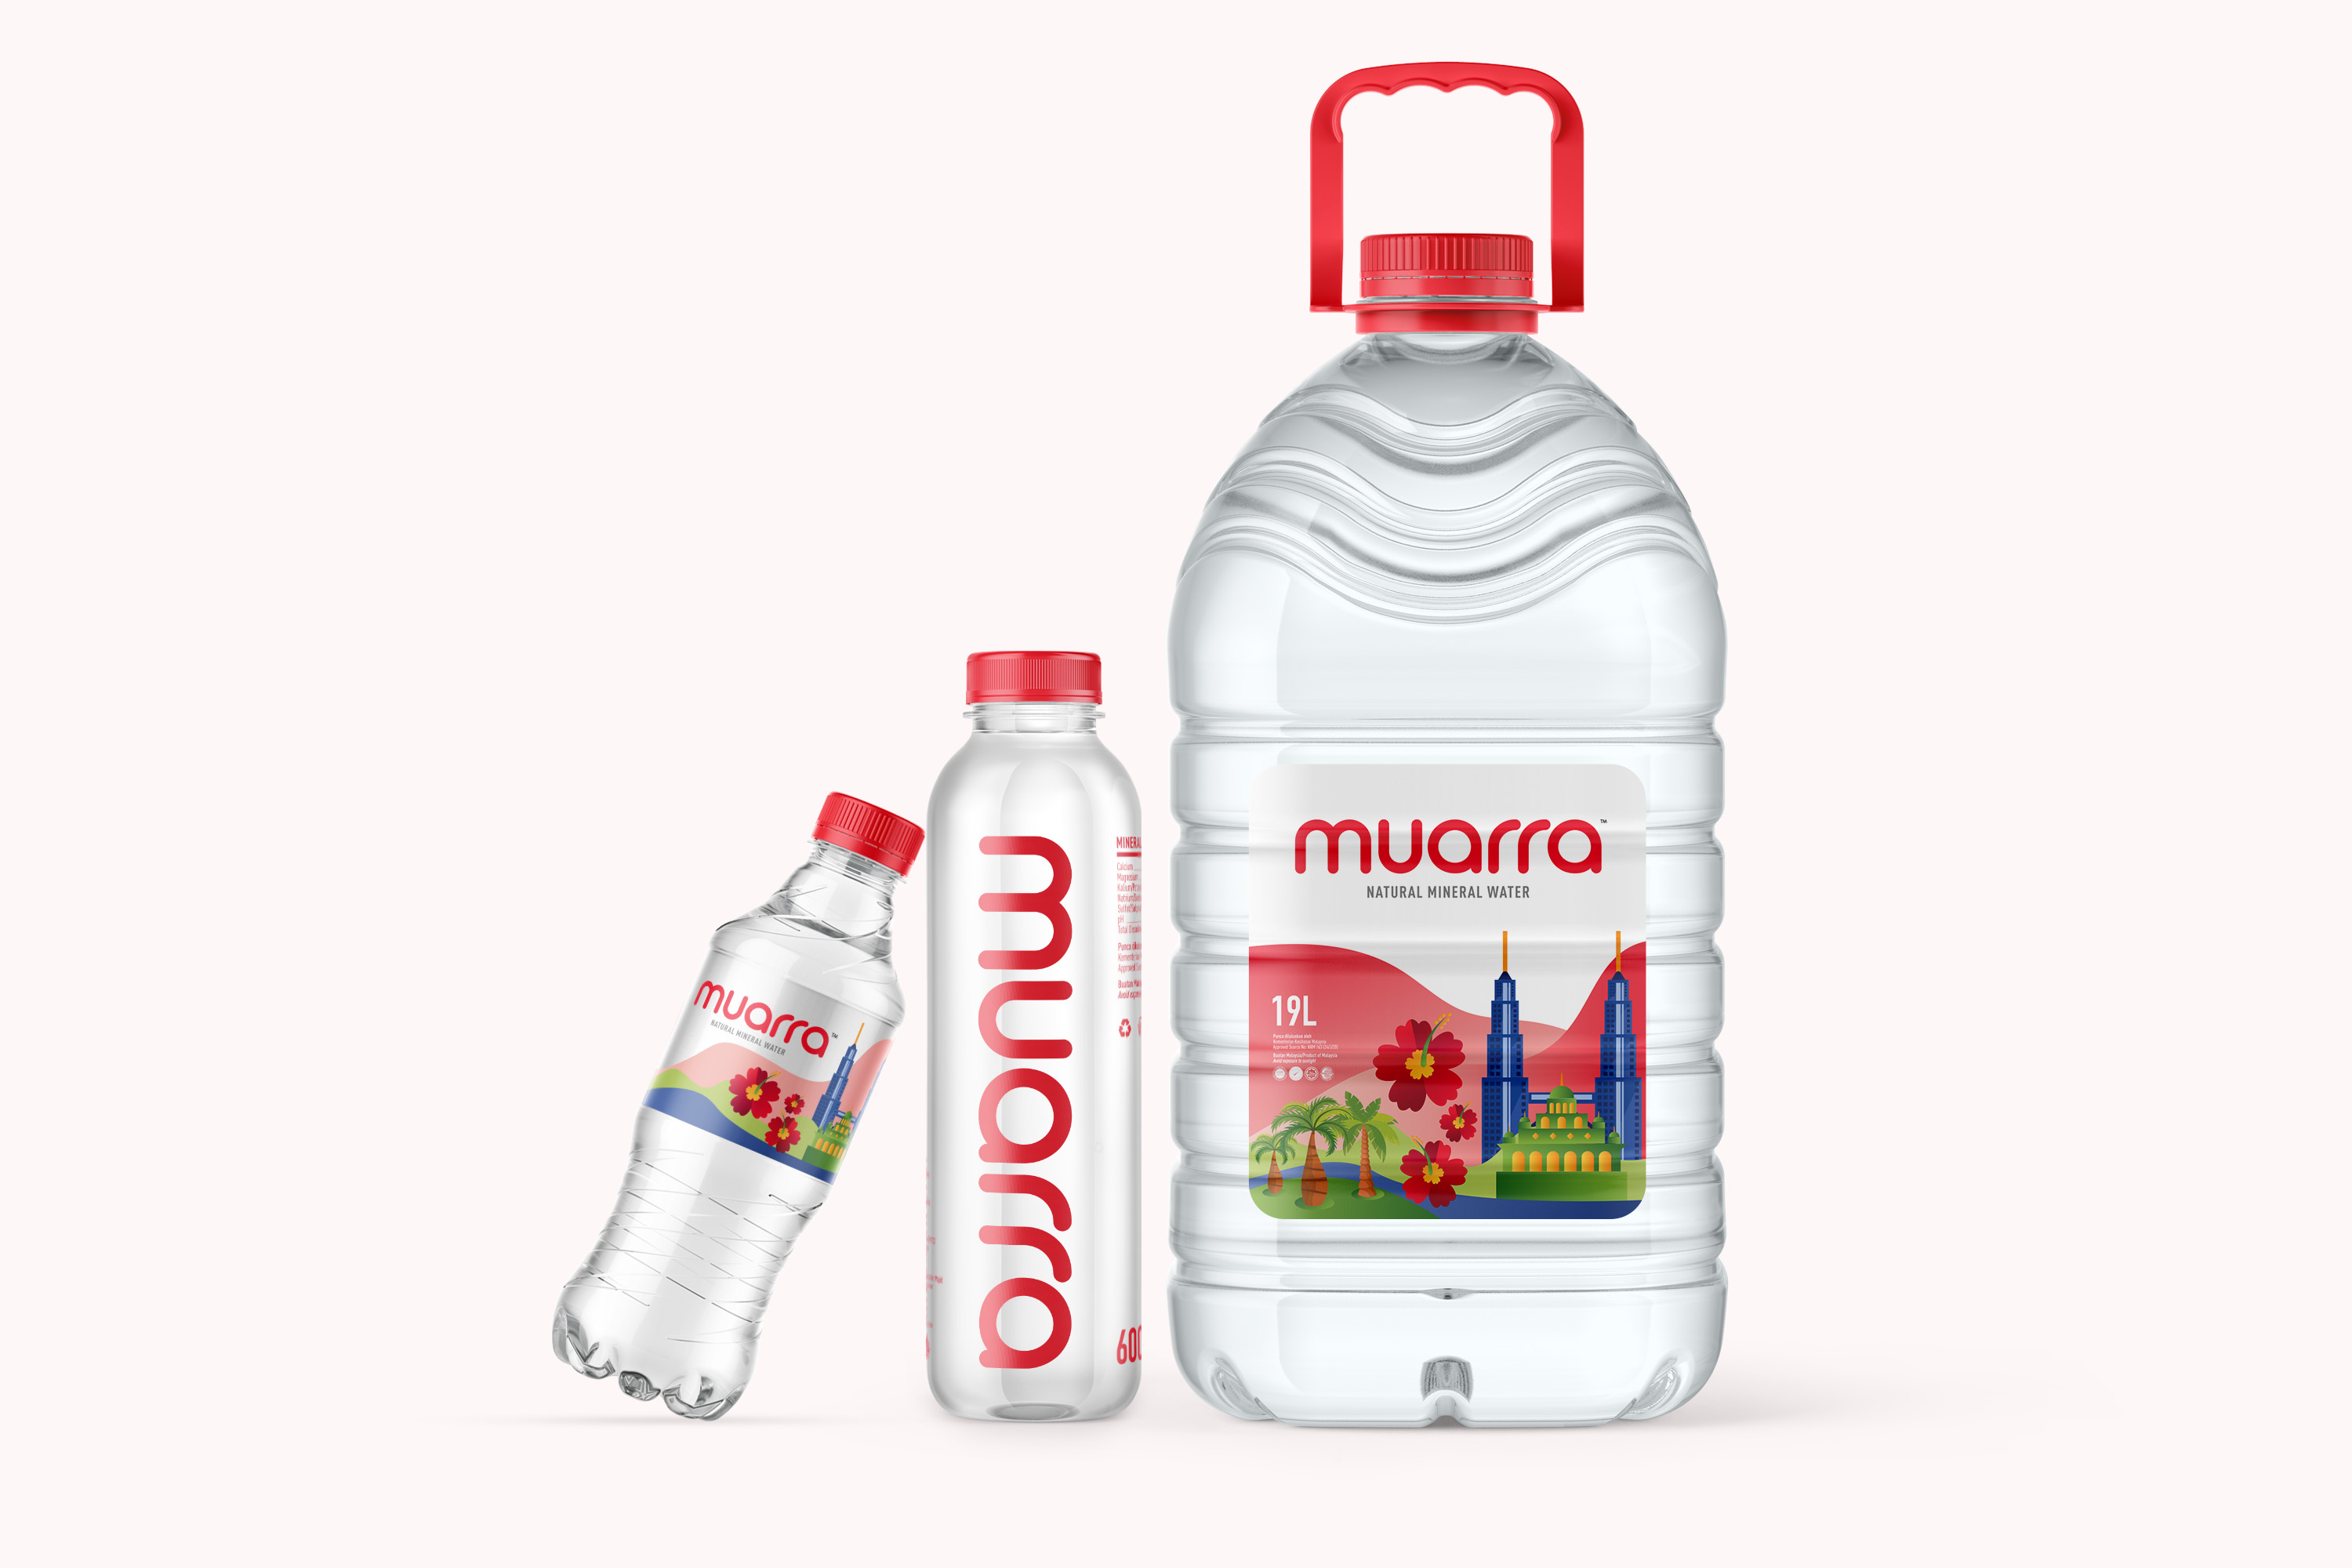 Widarto Impact Created the Brand Identity and Packaging Design for Muarra Mineral Water